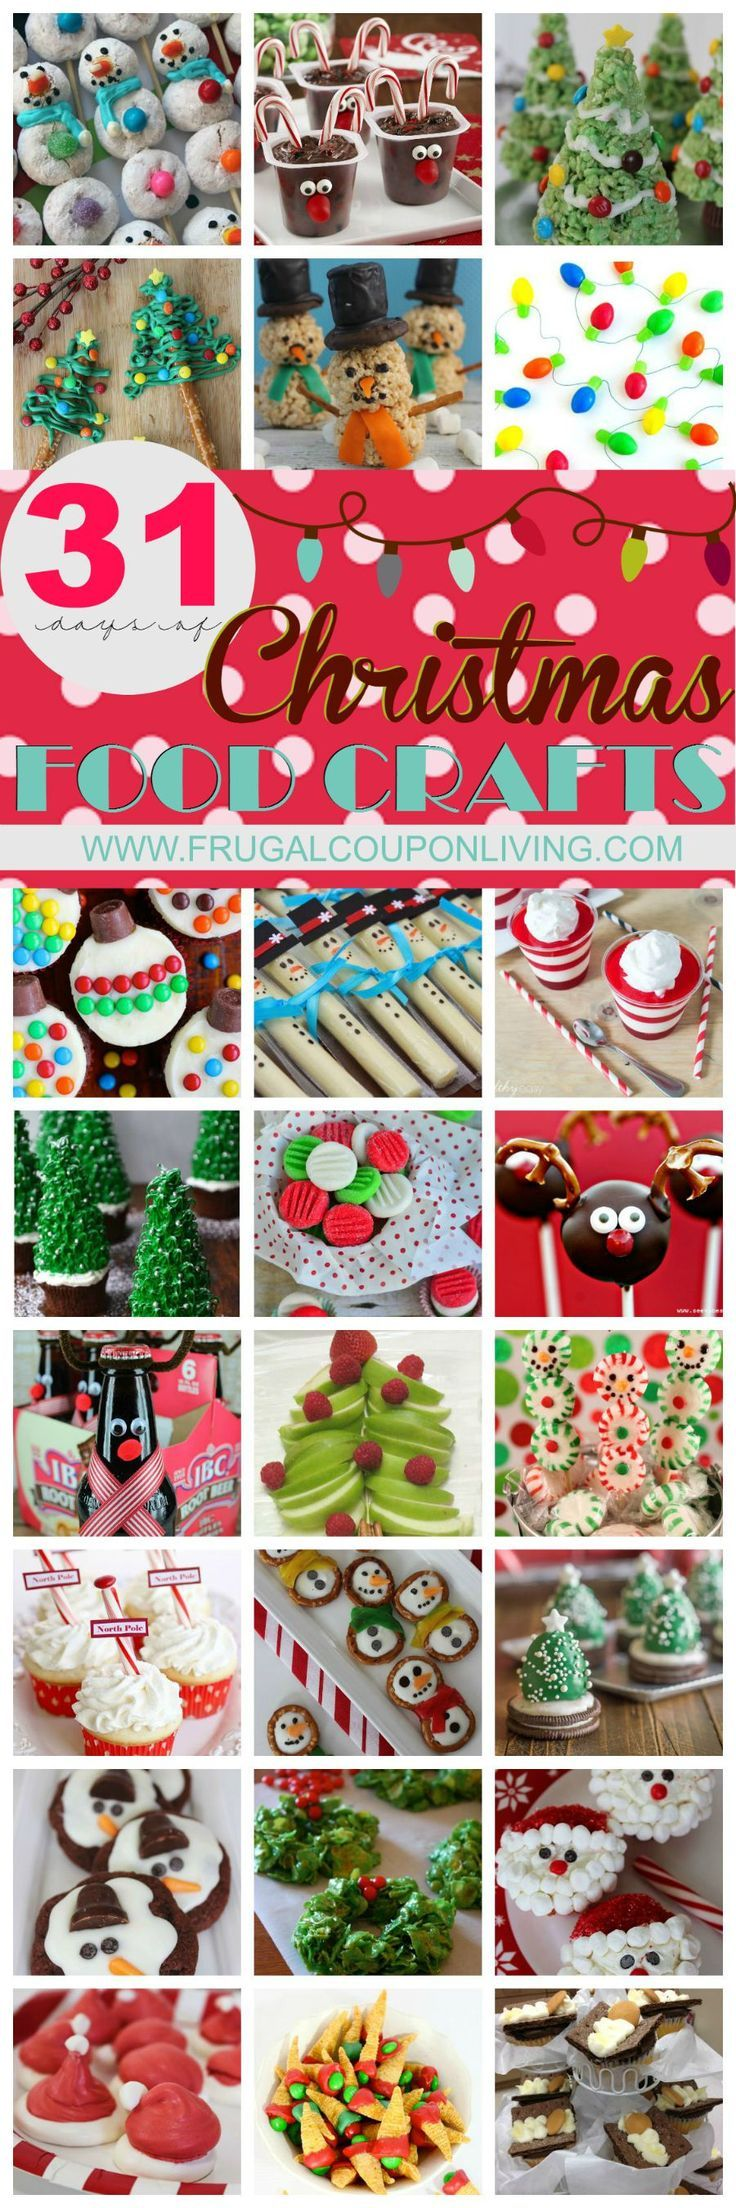 31 Days of Christmas Food Crafts on Frugal Coupon Living. Great Holiday Snack Ideas for the party, great snack ideas for class parties!